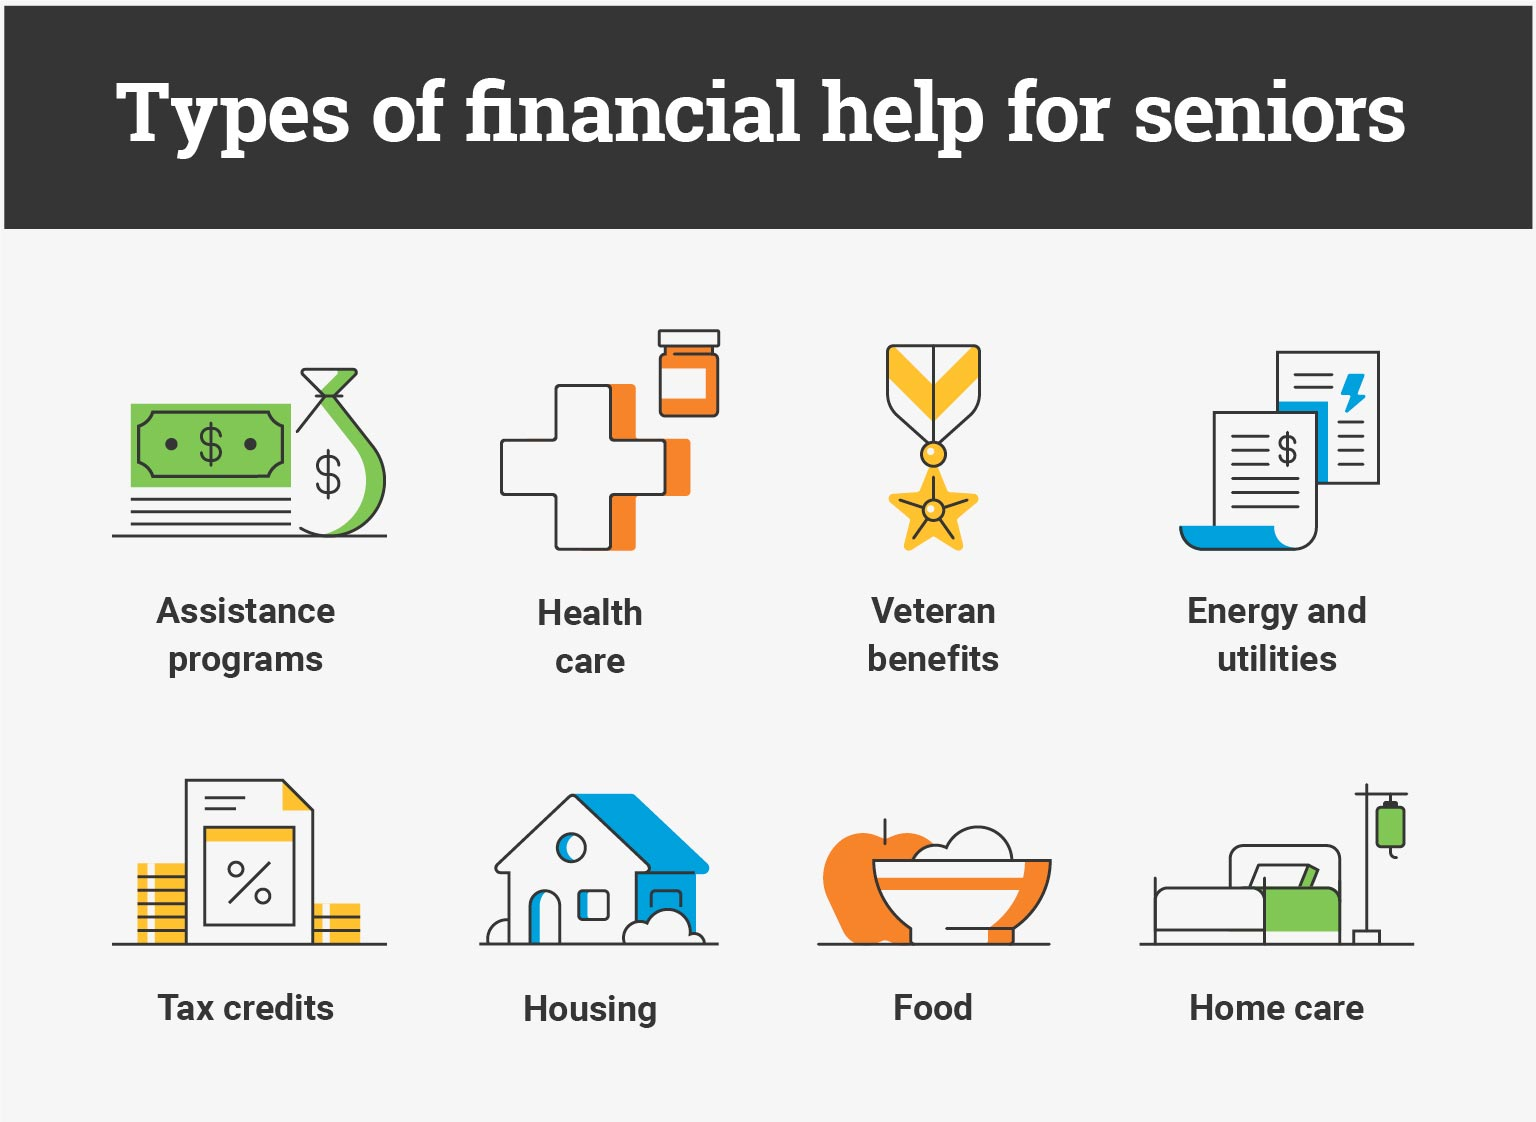 Graphic showing the types of financial help available to seniors